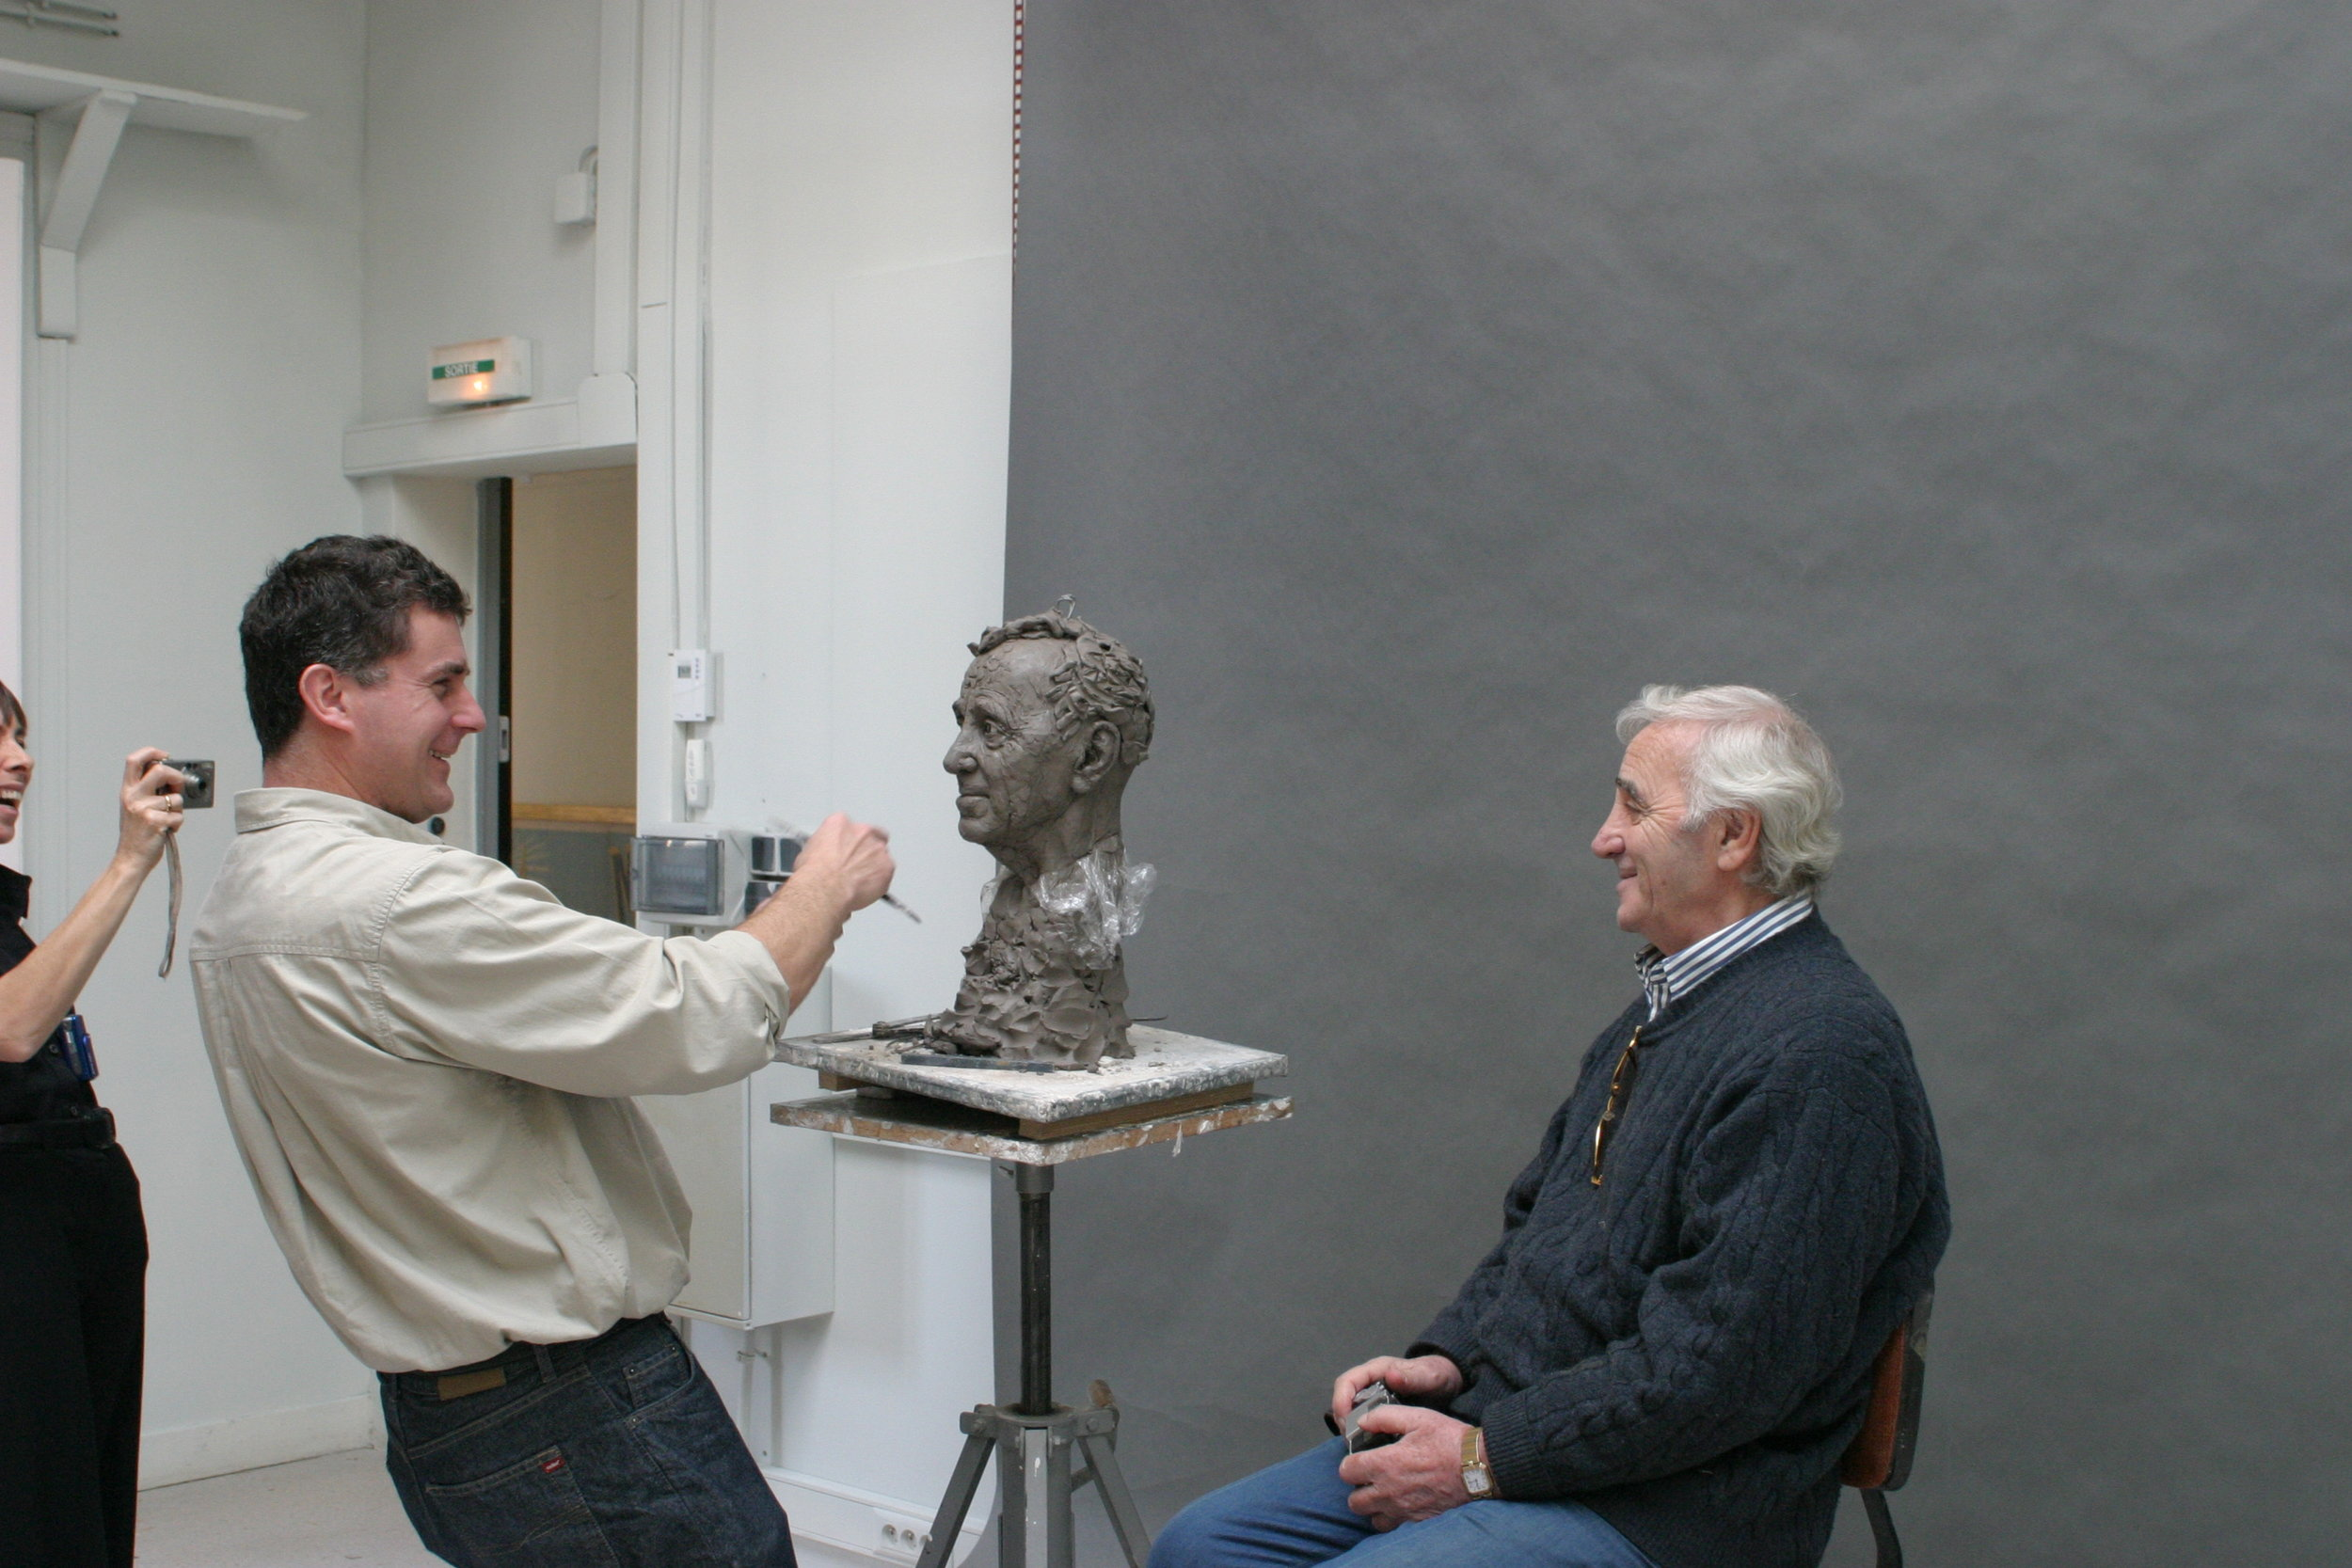 Charles Aznavour, the sculpture and the sculptor - Clay sculpture by Eric Saint Chaffray - Credit Musée Grévin